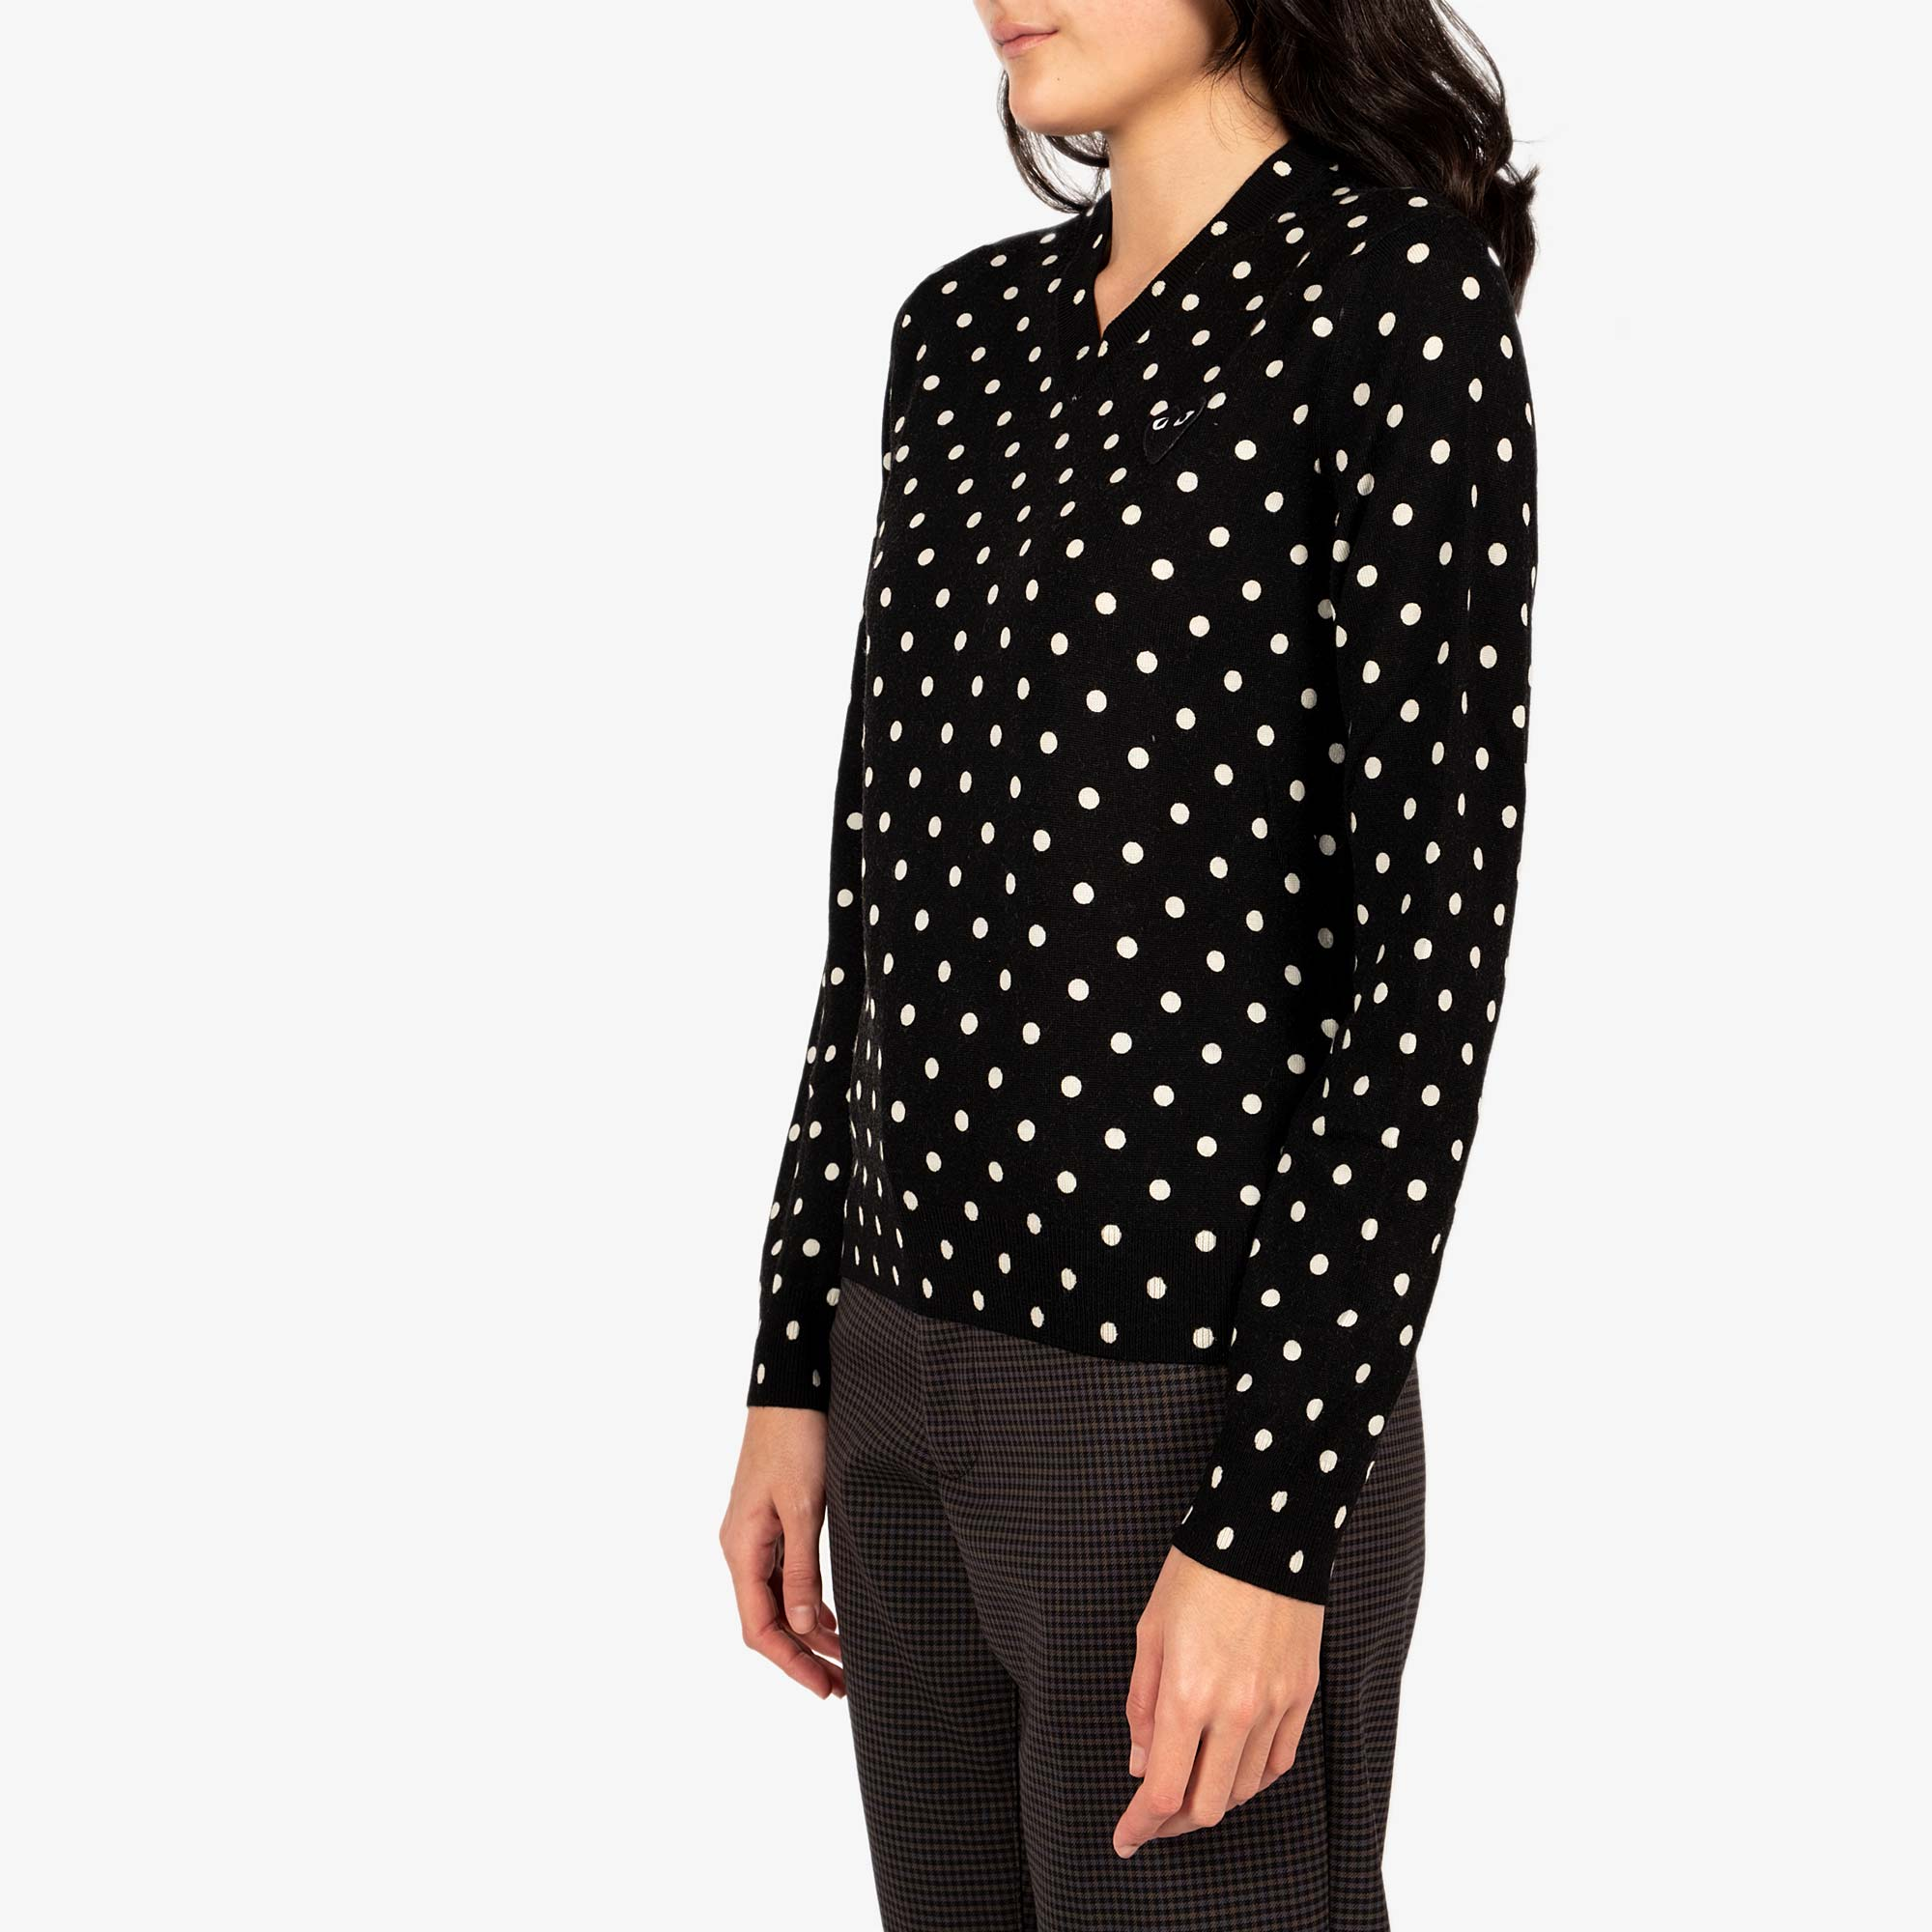 Comme des Garçons - PLAY Womens Black Emblem Polka Dot V-Neck Pullover - Black 3